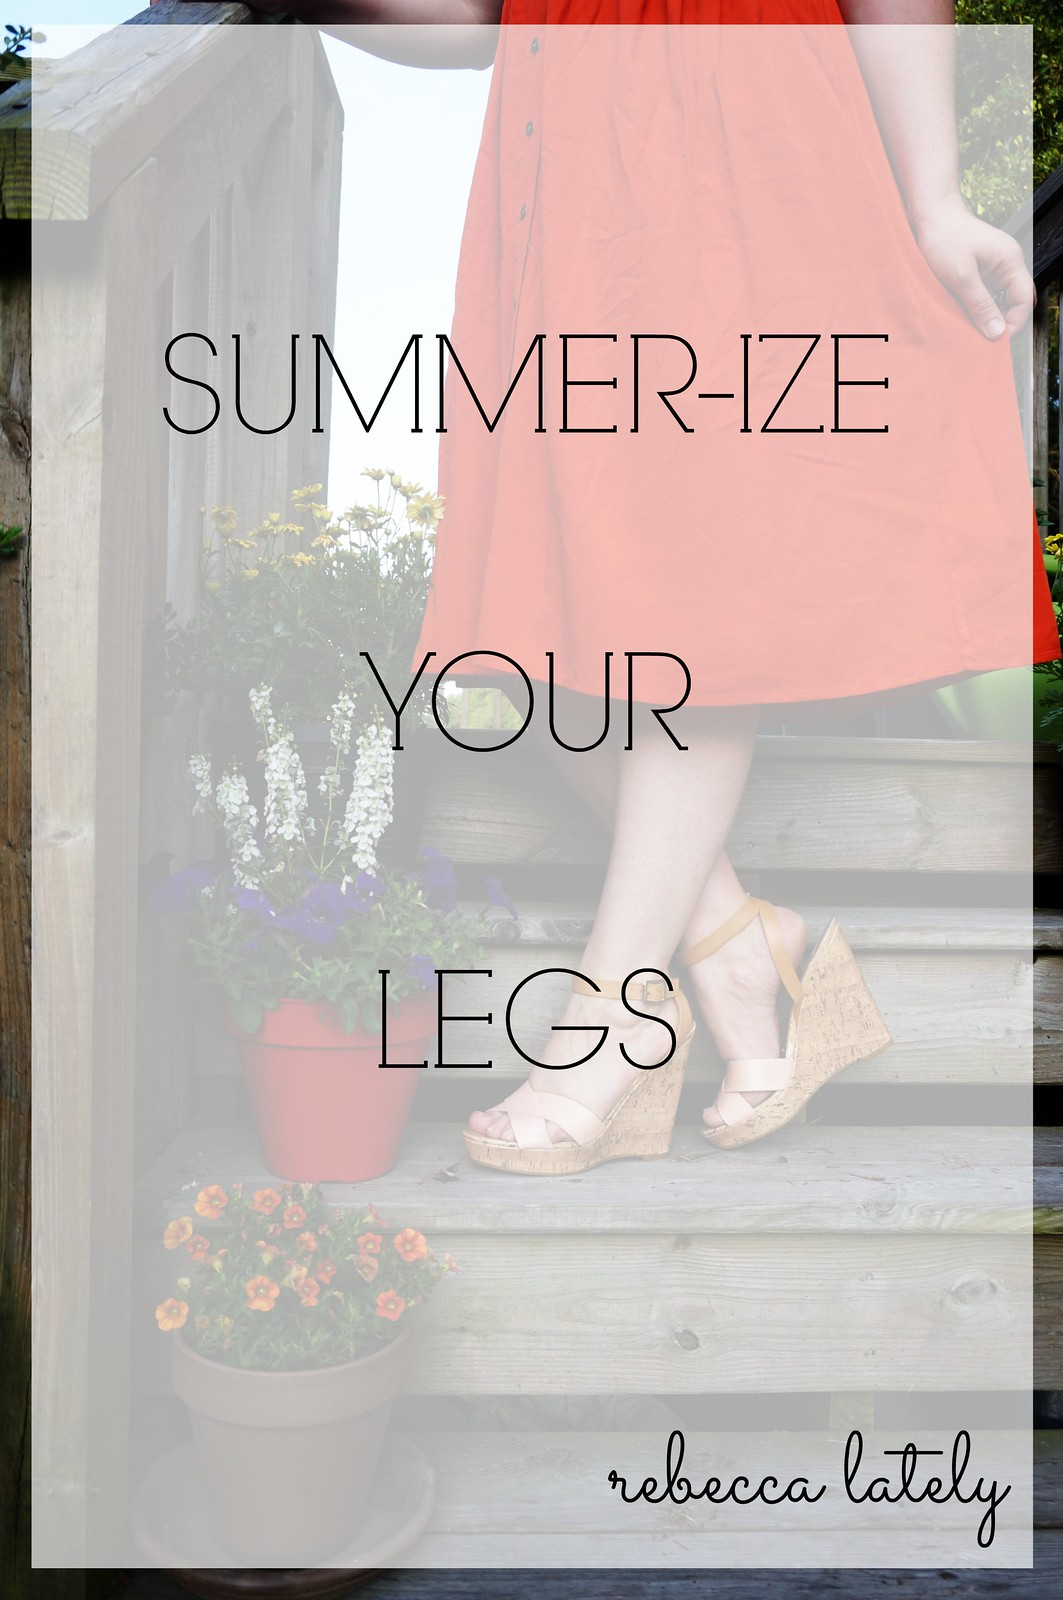 Summerize Your Legs 2